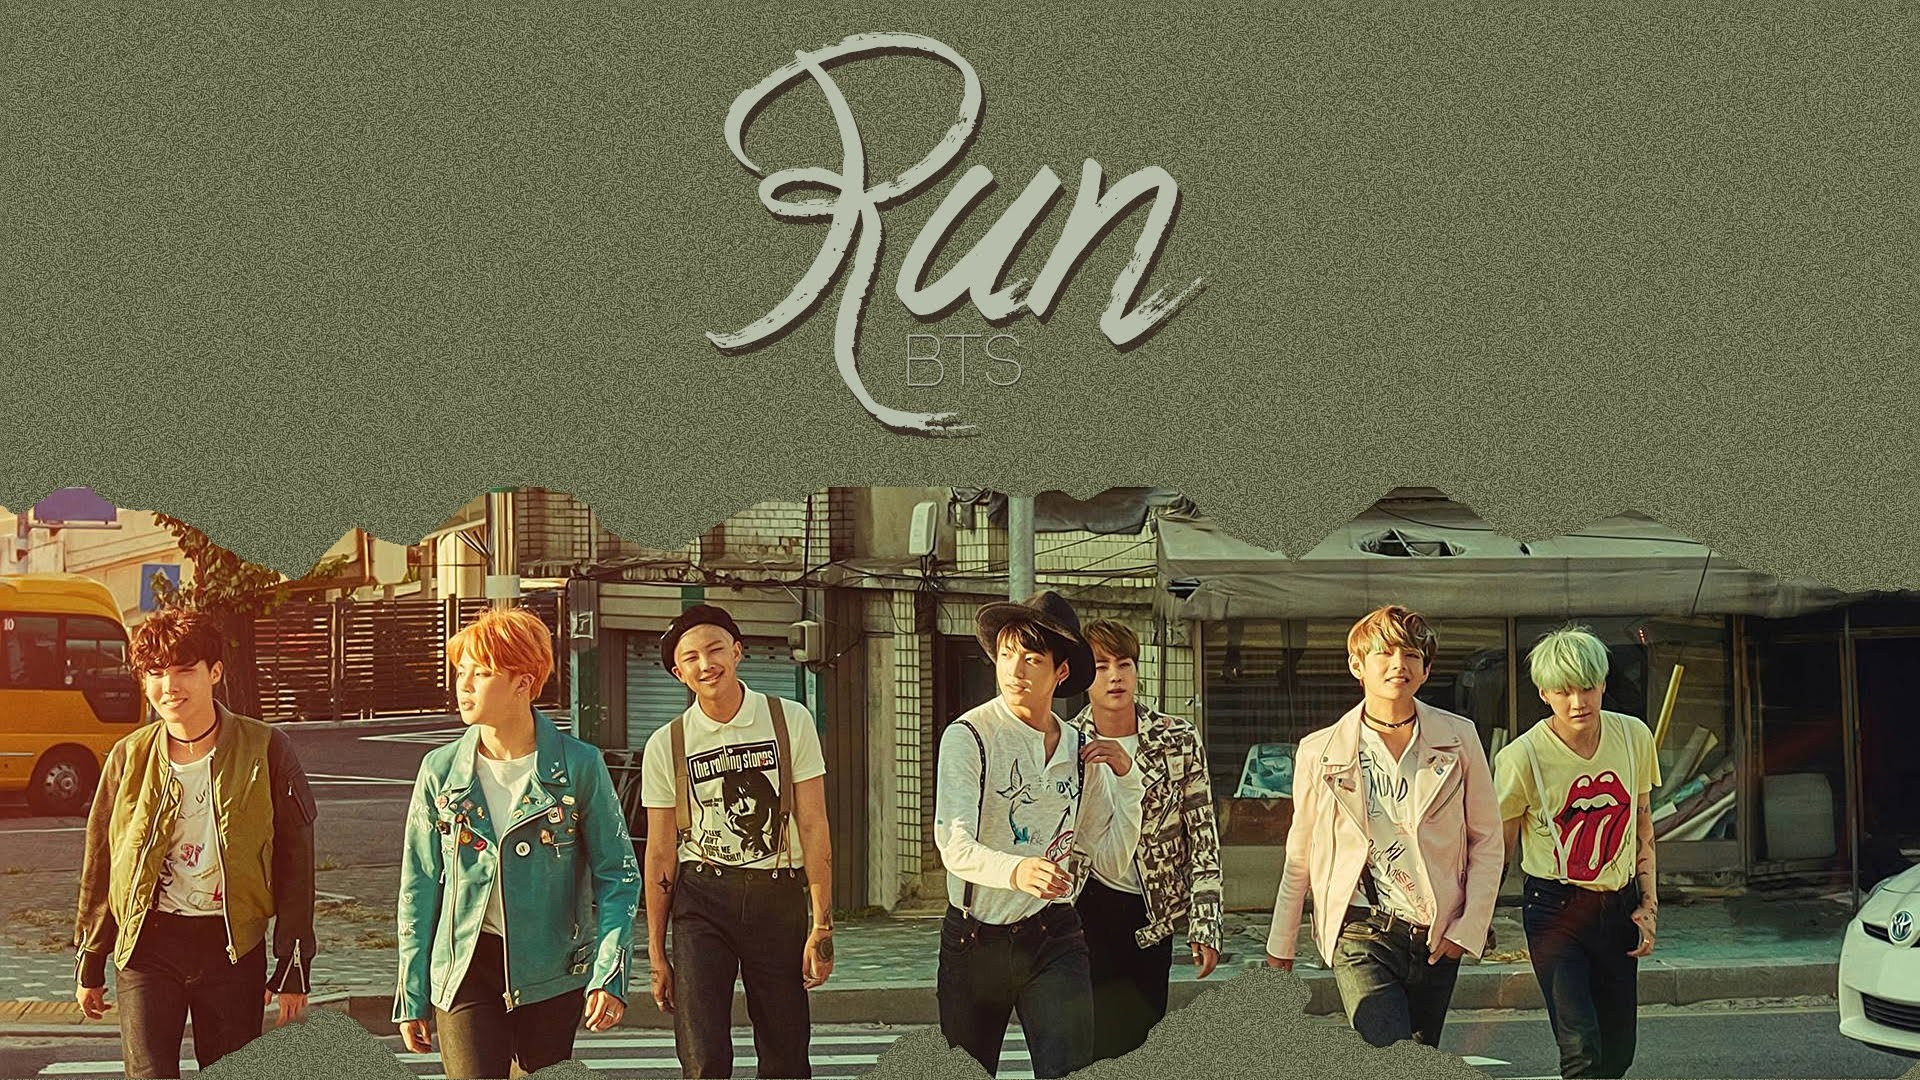 1230959 bts run wallpaper 1920x1080 for windows